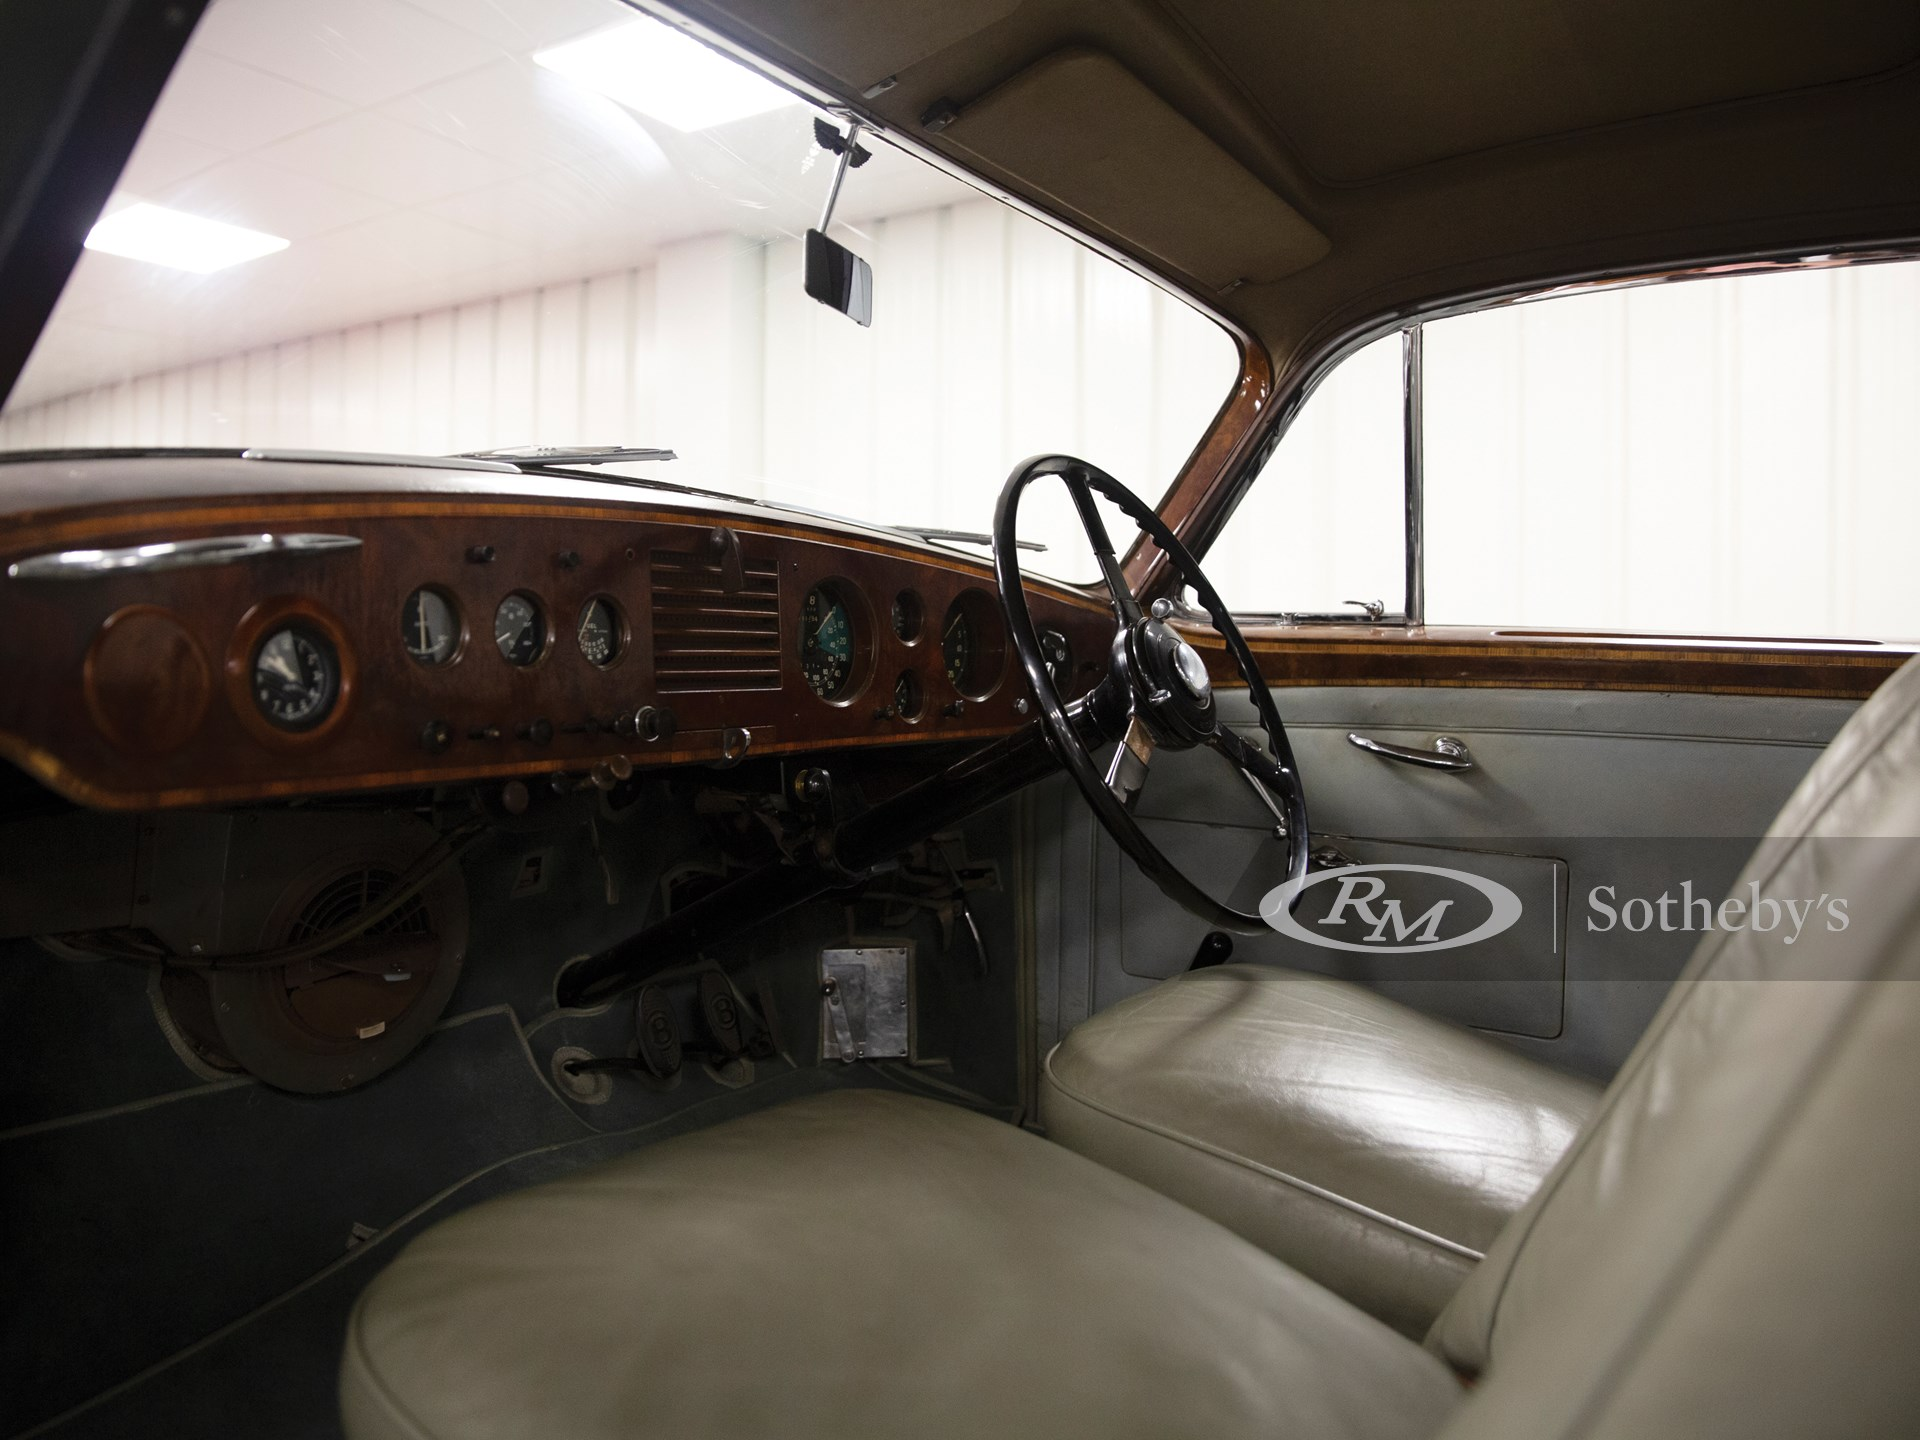 1953 Bentley R-Type Continental Sports Saloon by H.J. Mulliner -